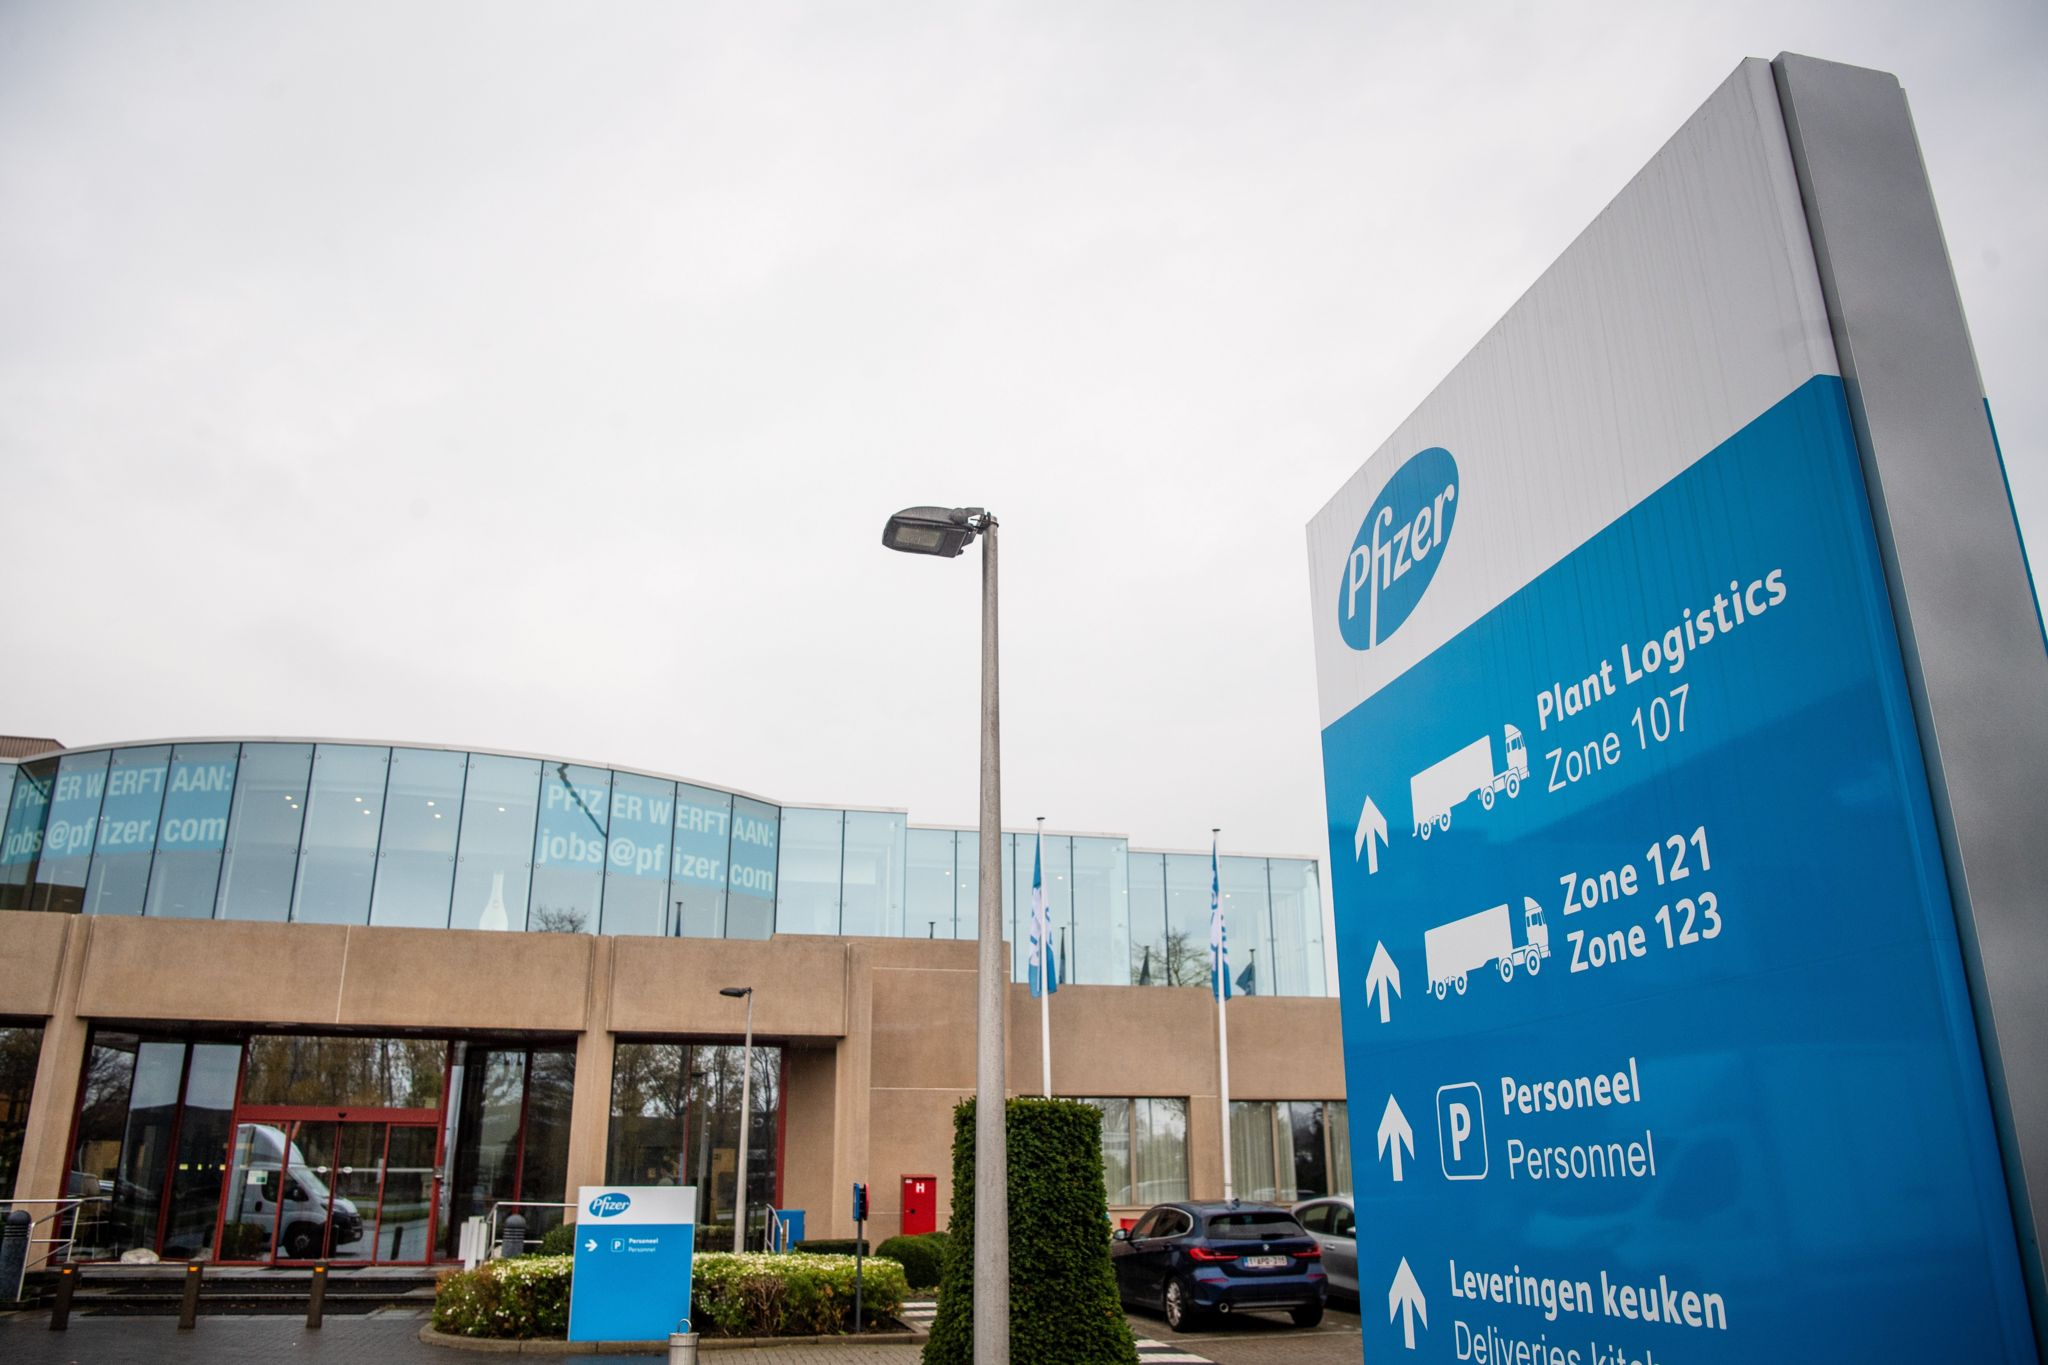 The Pfizer BioNTech vaccine is being manufactured in Belgium